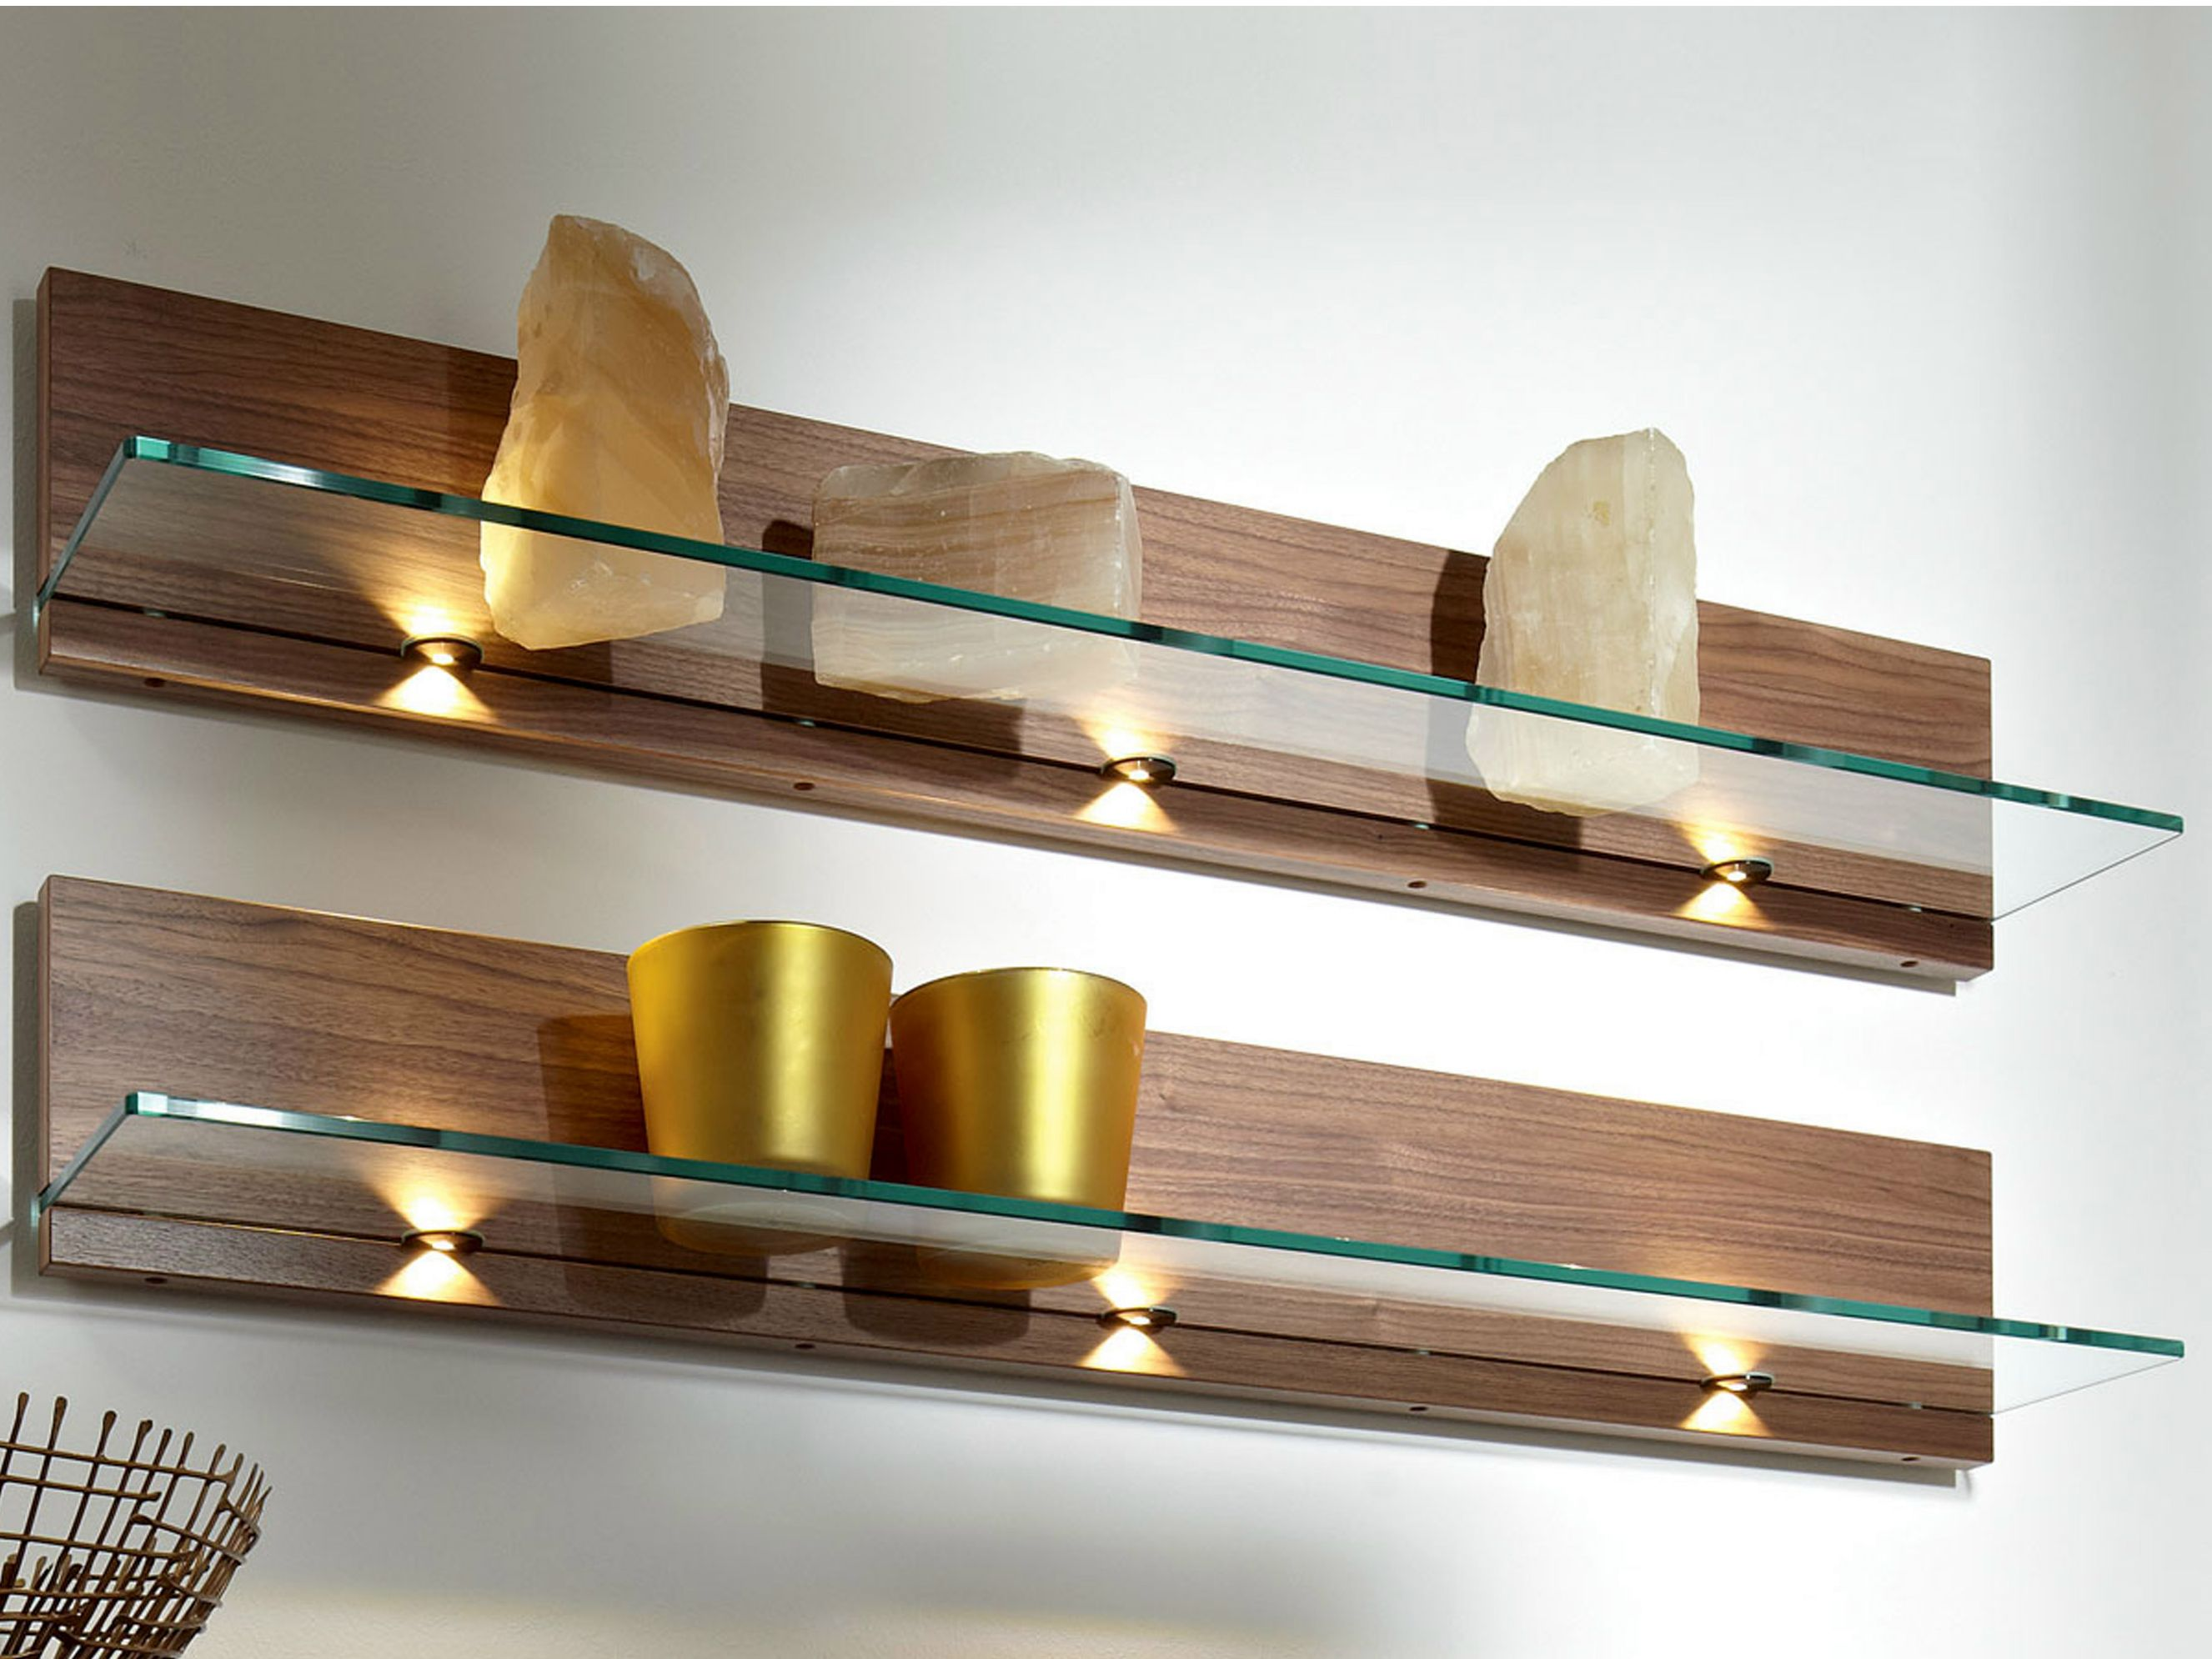 METIS PLUS Walnut wall shelf by HülstaWerke Hüls Rack